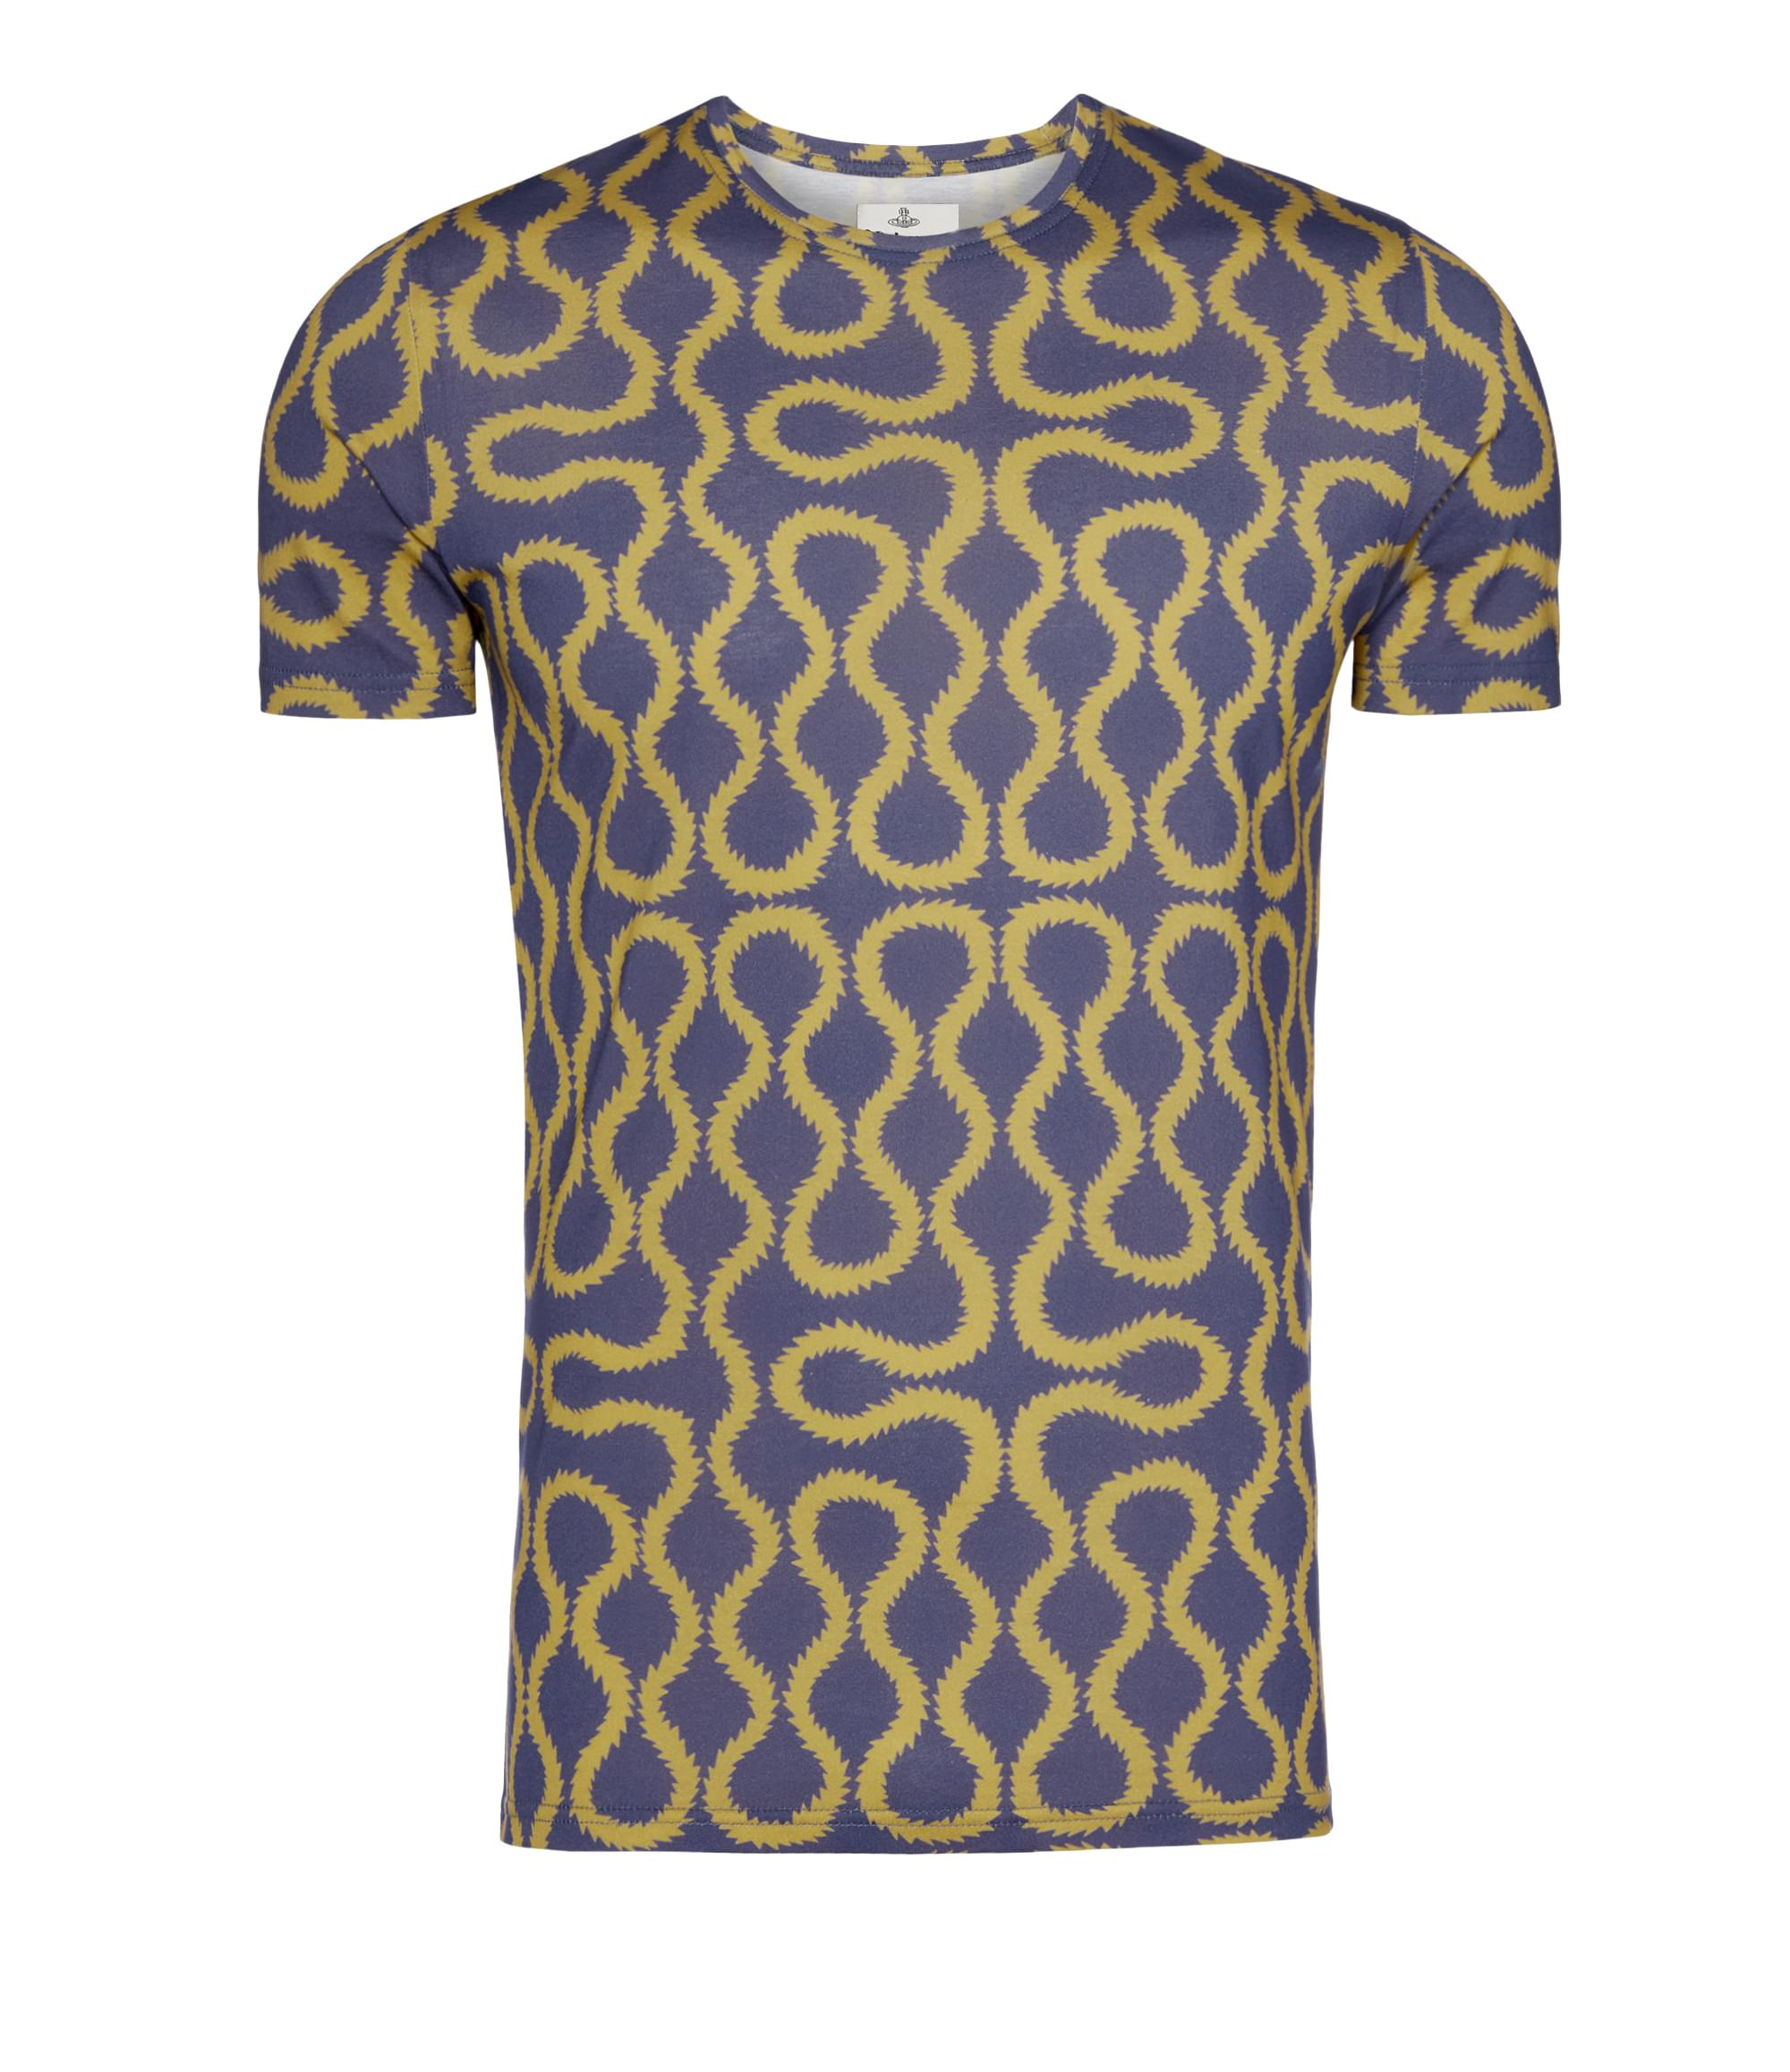 Vivienne Westwood Squiggle T-Shirt Gold\/Blue